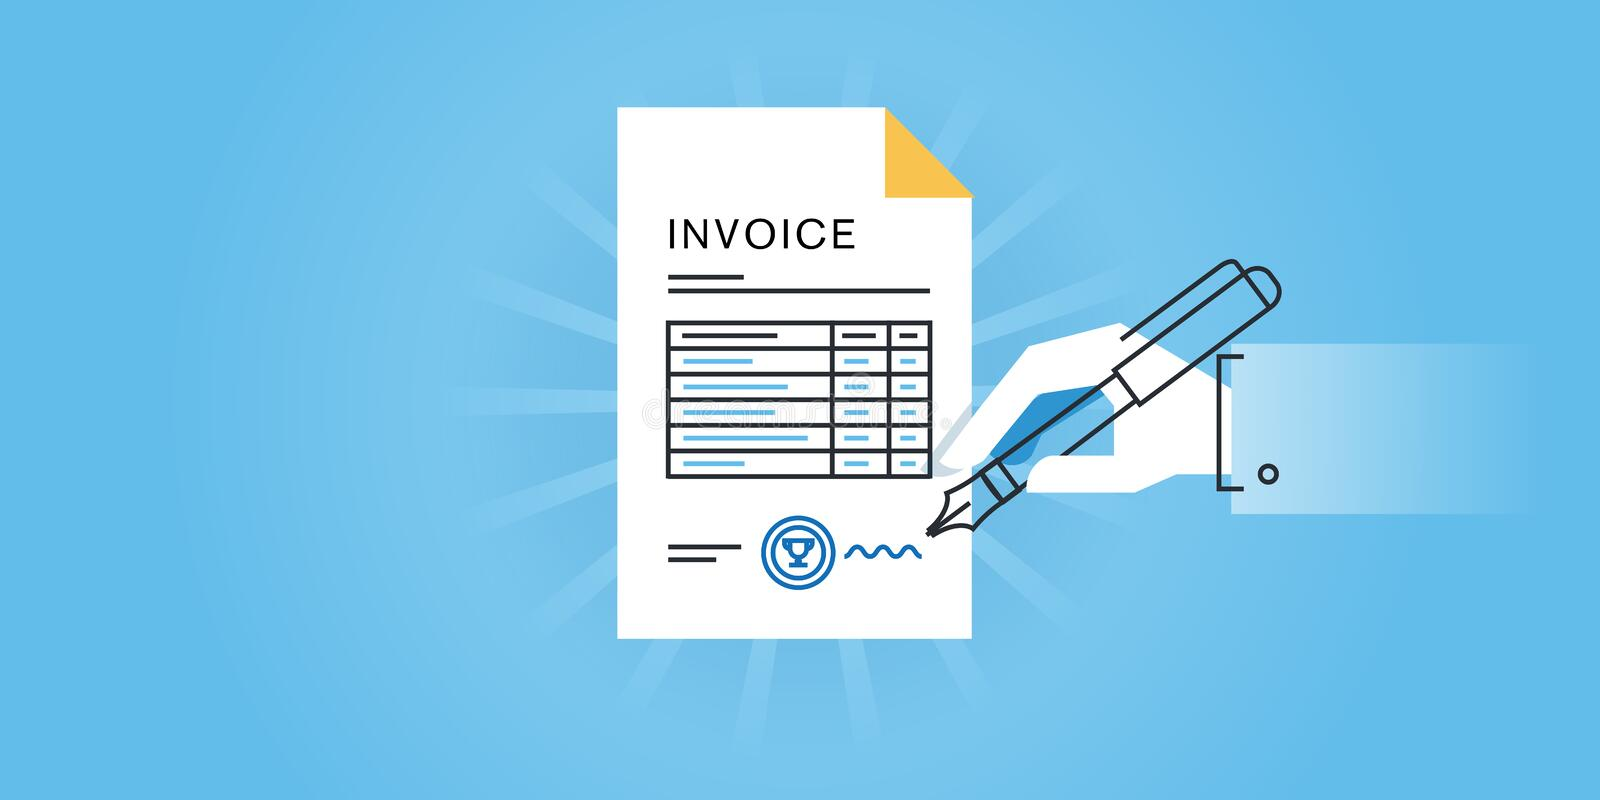 Flat Line Design Website Banner For An Invoice, Online Invoice - invoice generator software